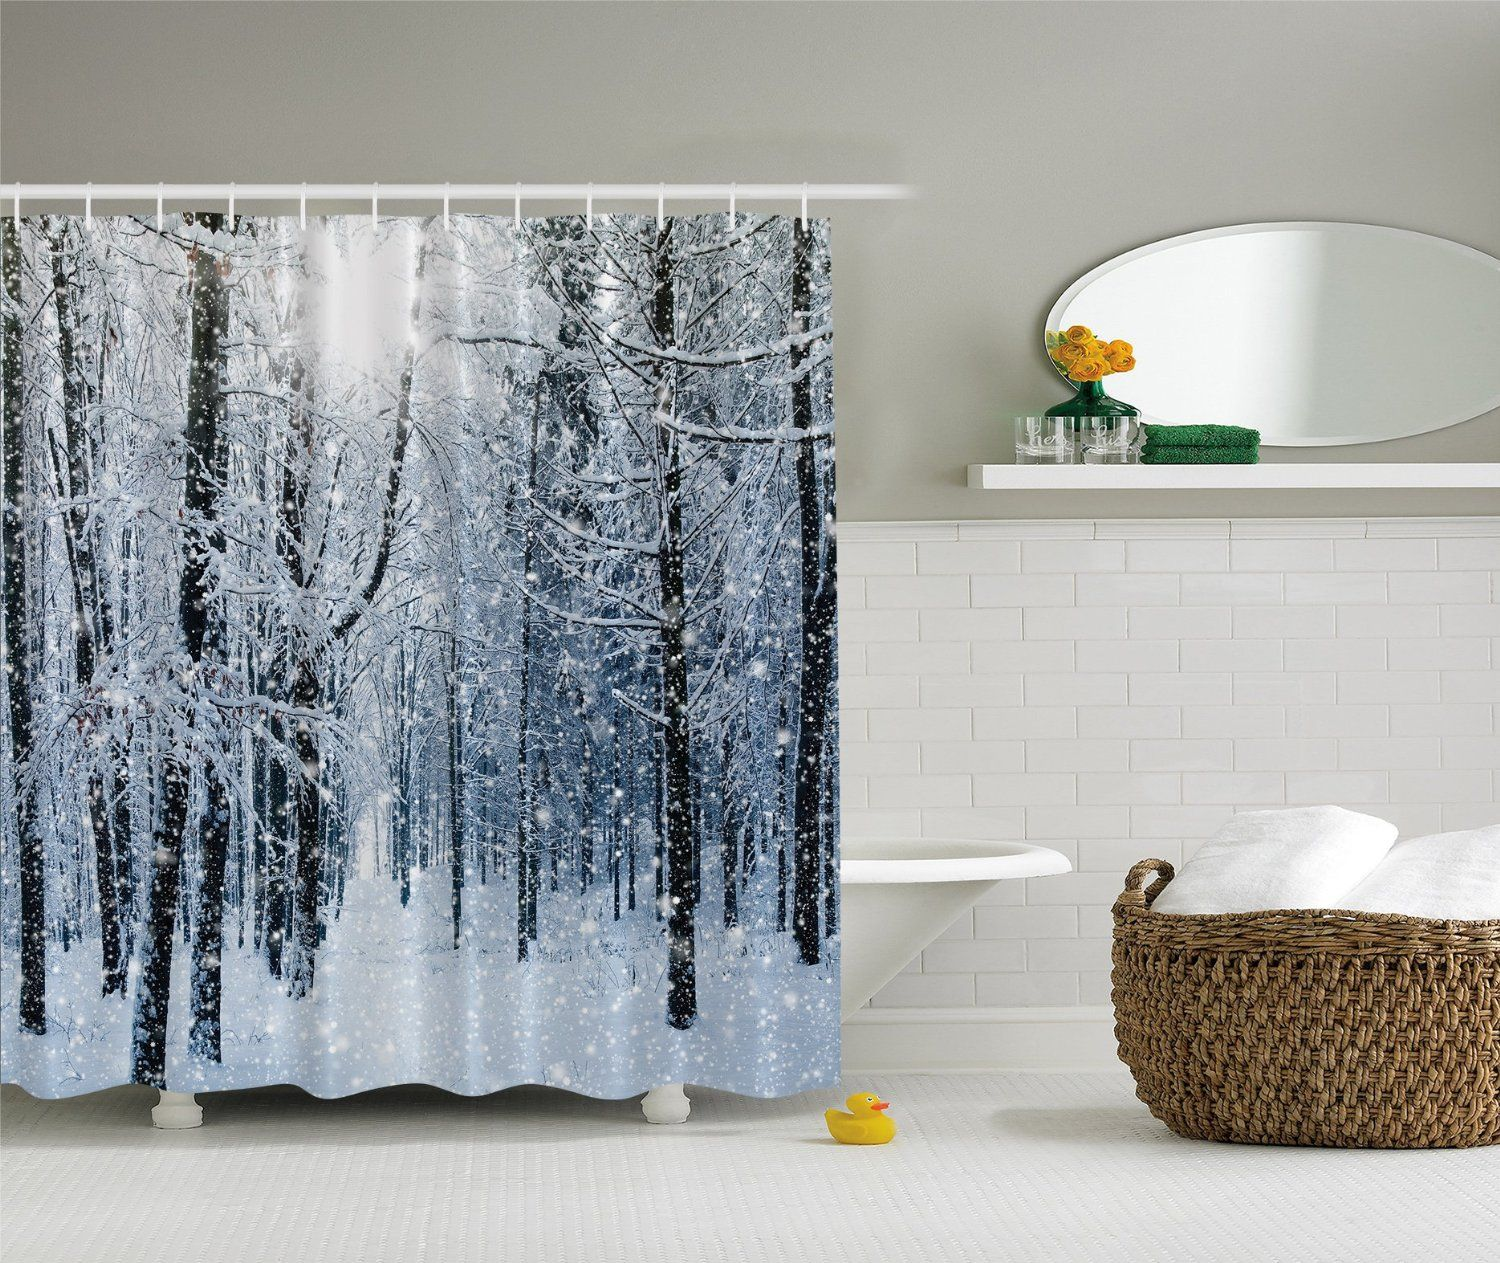 Amazon Com Winter Snow On Trees In A Forest Fabric Shower Curtain Bedding Fabric Shower Curtains Shower Curtain Sets Cool Shower Curtains